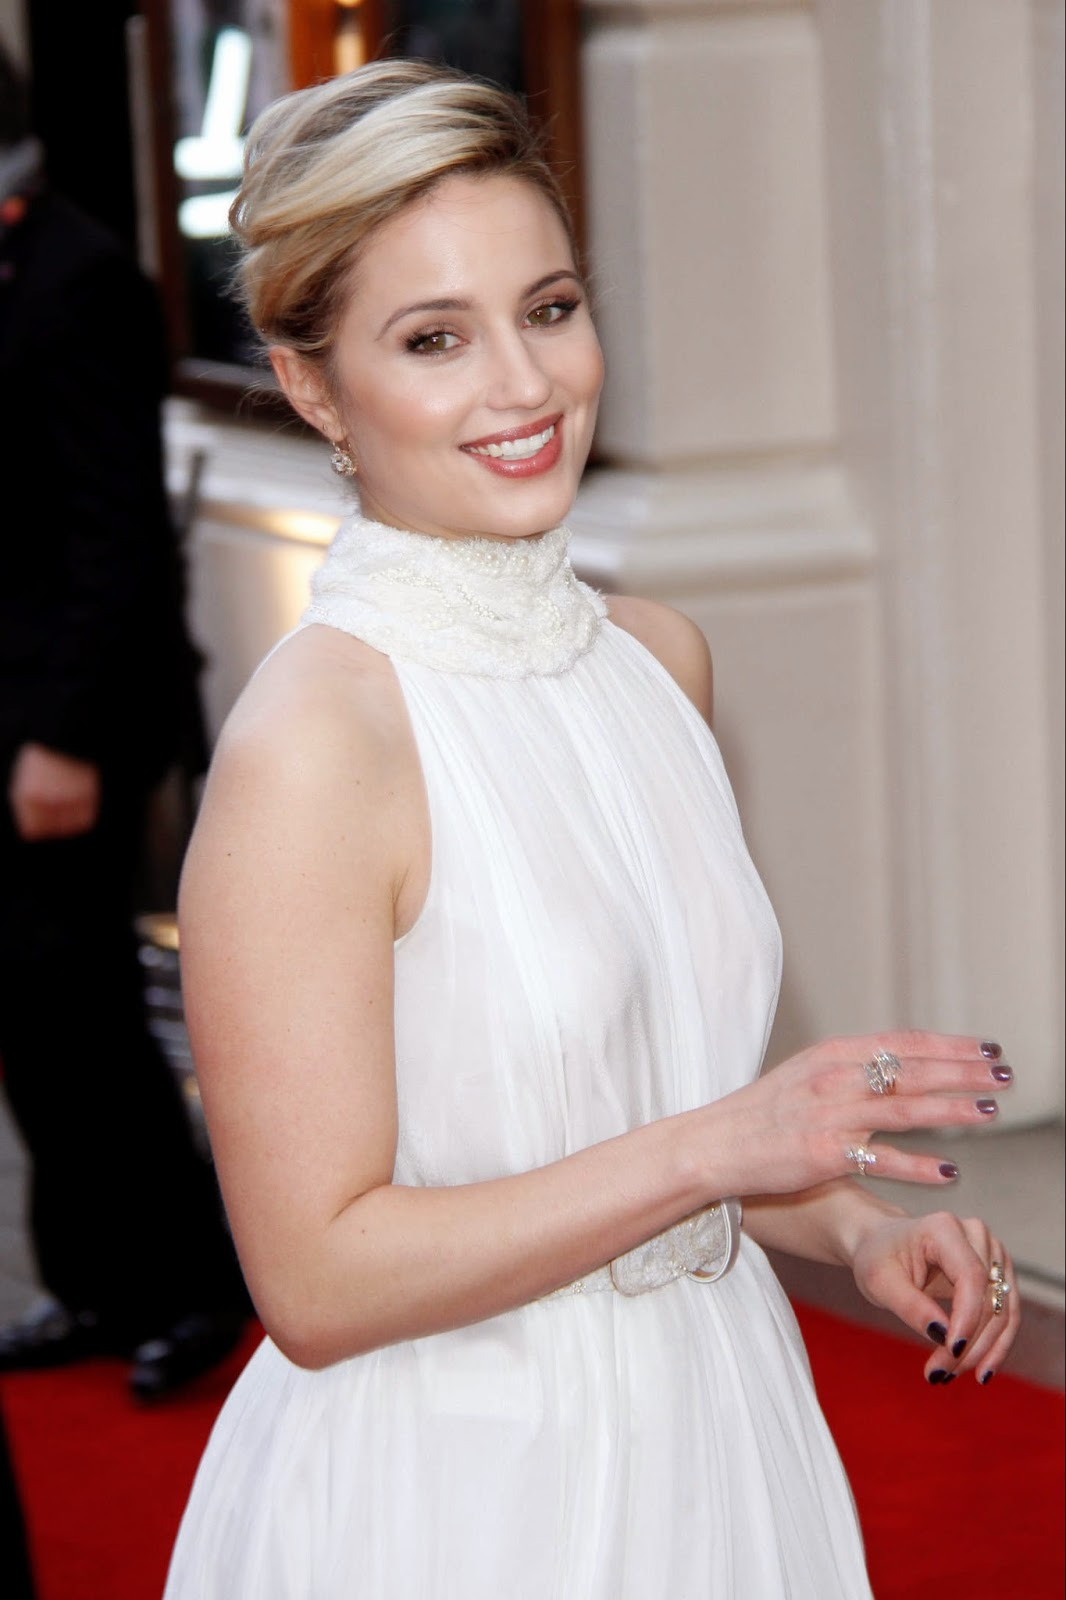 Dianna Agron wears Alexander McQueen to the 2015 Olivier Awards in London